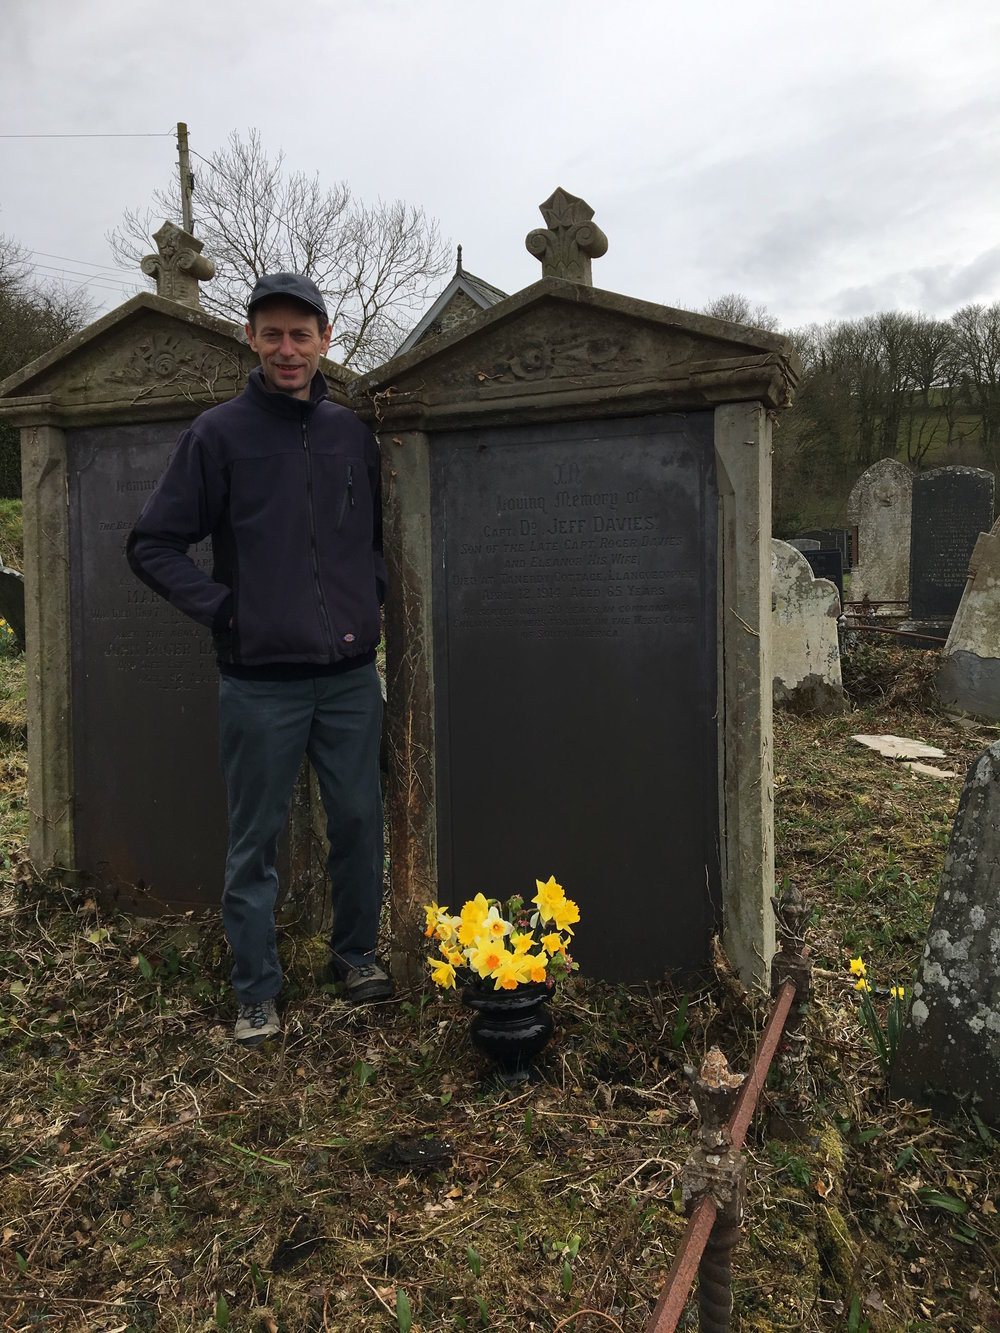 Fy mrawd, Gareth Davies, yn sefyll ar bwys y bedd. Ni yw'r bobl gyntaf i osod blodau ar ei fedd ers blynyddoedd maith rwy'n credu.  My brother, Gareth Davies, by the graveside. I suspect we are the first people to lay flowers on his grave for a very long time.